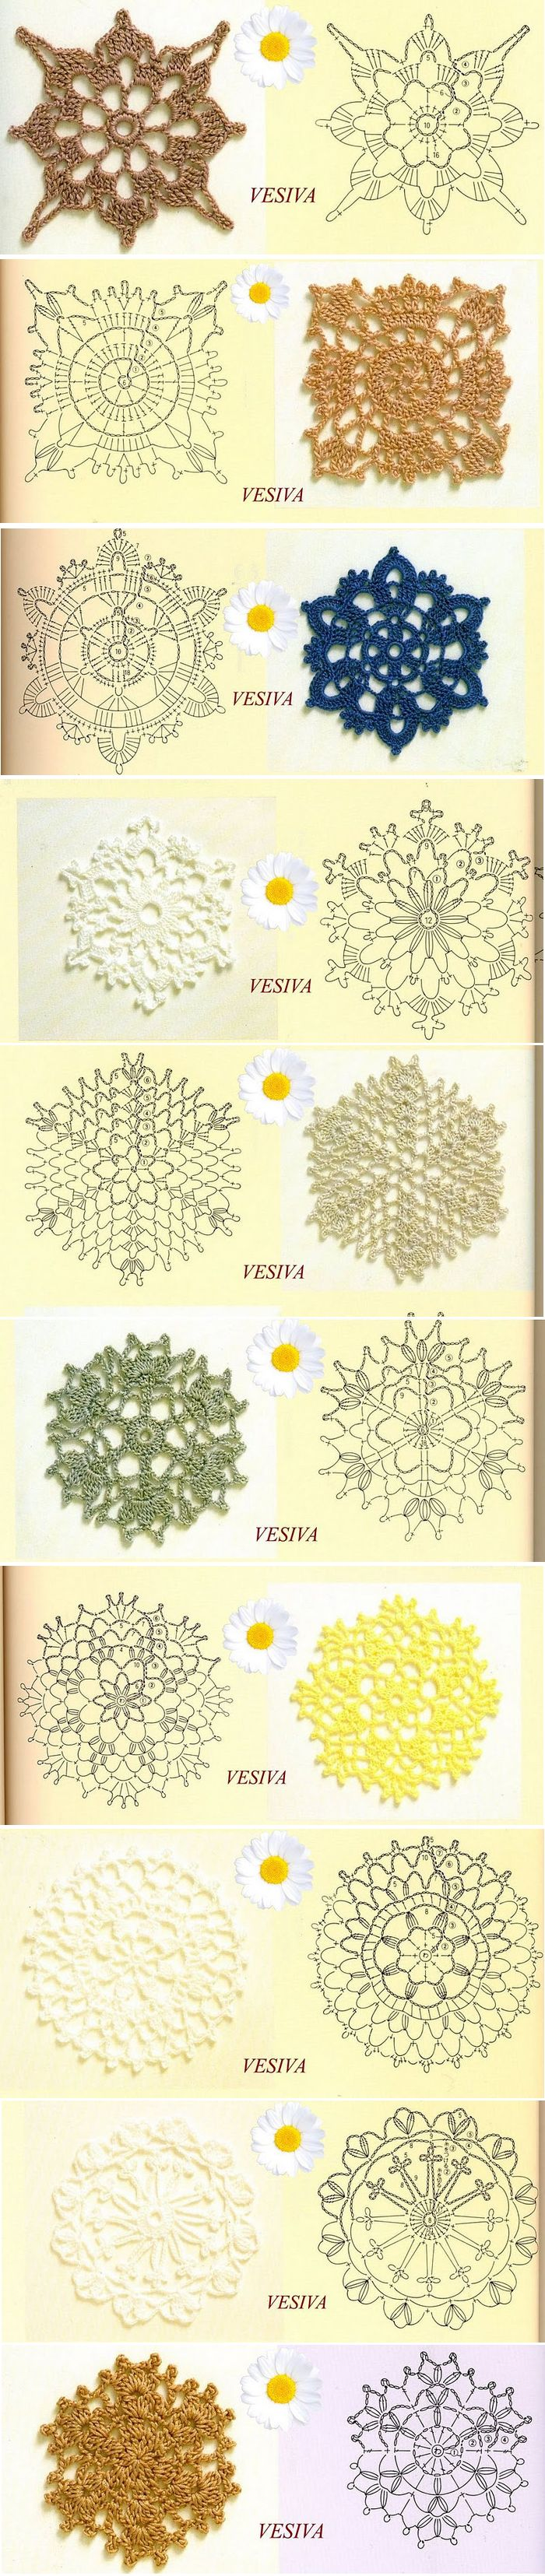 crochet motifs, to join for a big bed cover or to make lacy curtains, or to use alone as coasters, doilies or tree decoration...                                                                                                                                                     Más